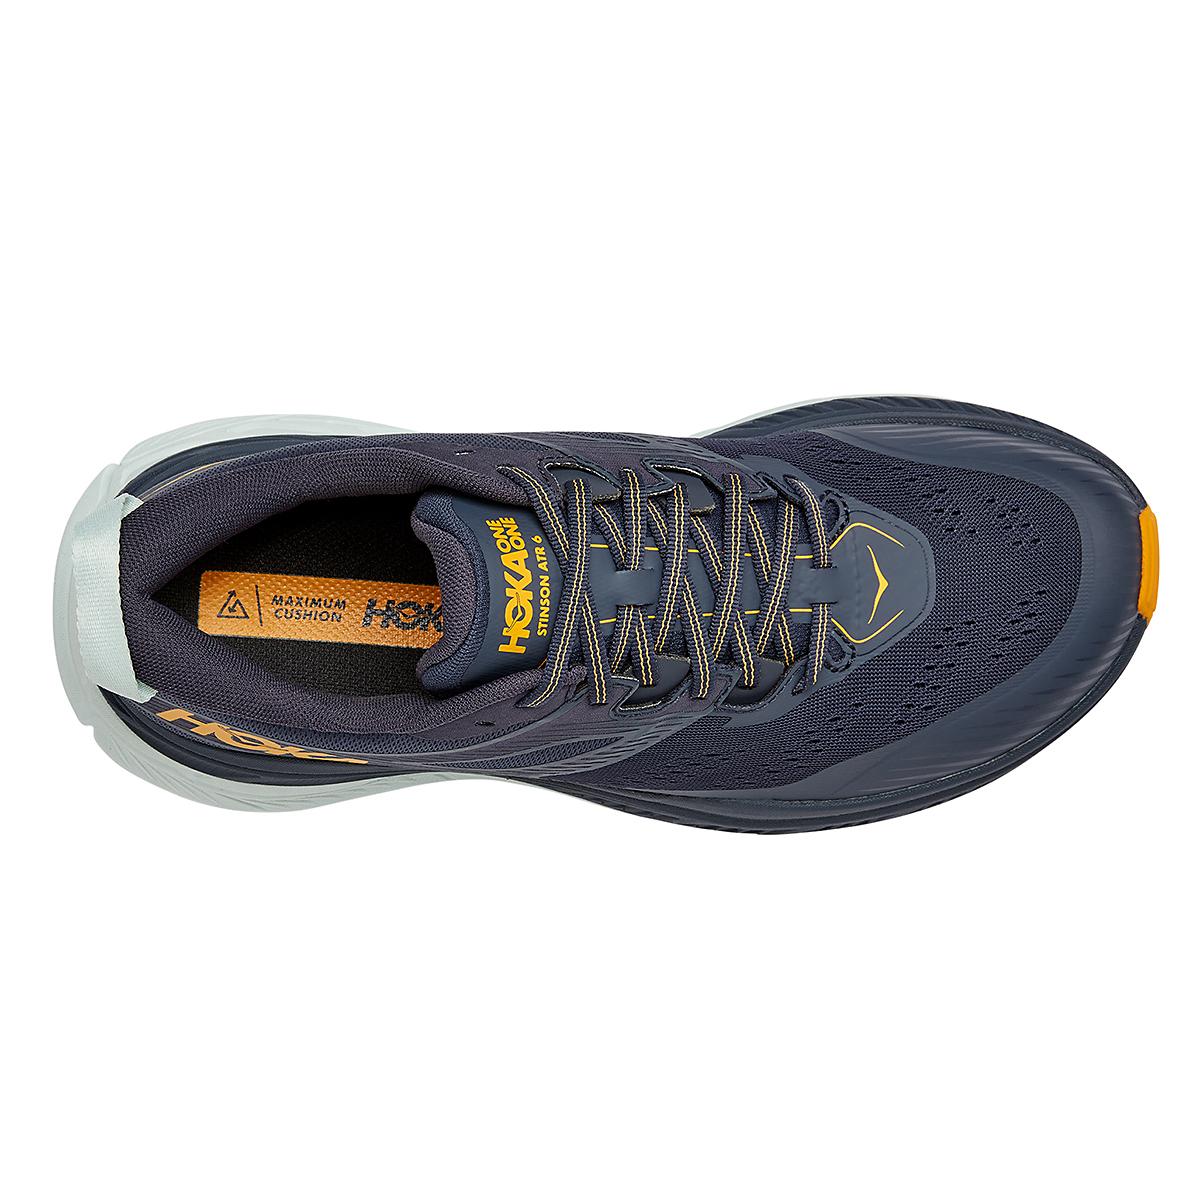 Men's Hoka One One Stinson Atr 6 Trail Running Shoe - Color: Ombre Blue - Size: 7 - Width: Regular, Ombre Blue, large, image 2